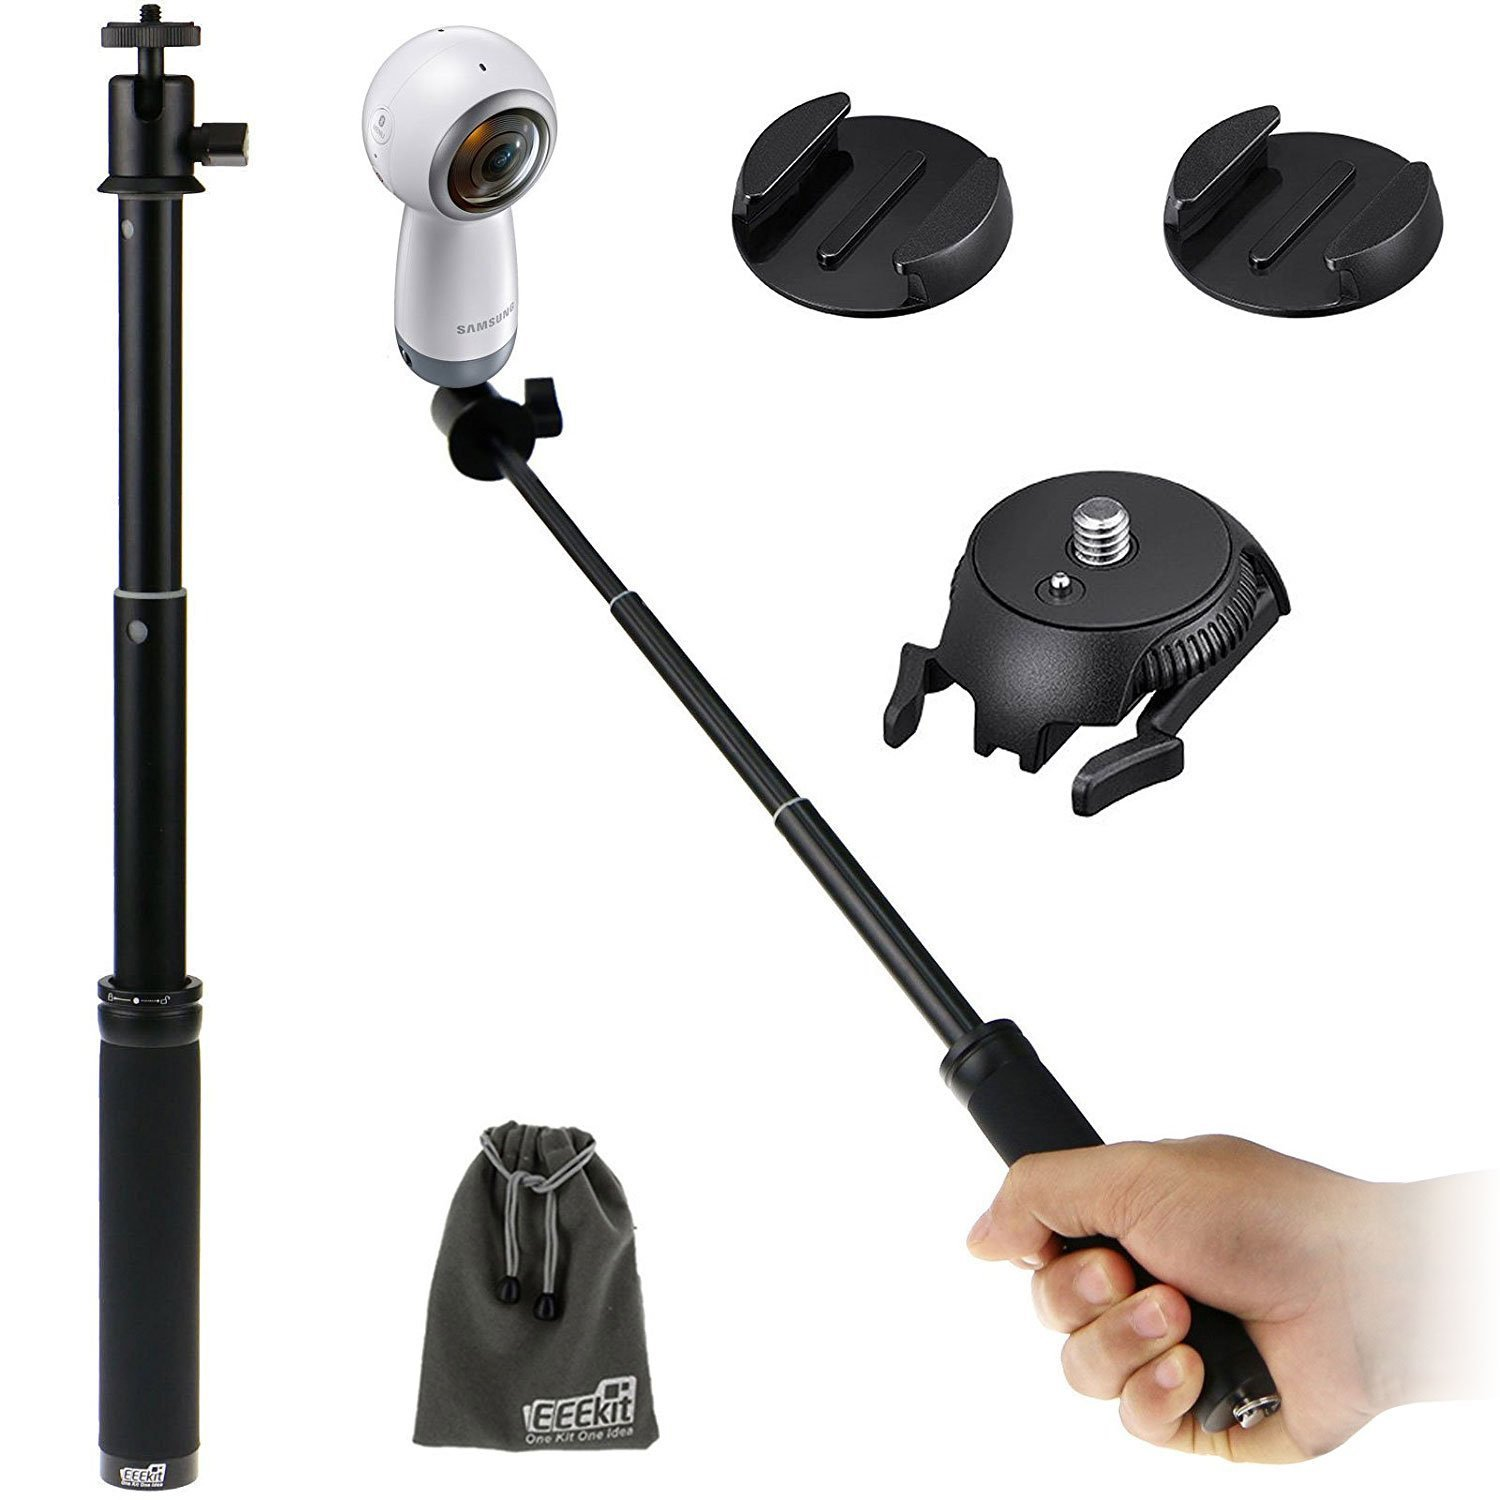 EEEKit 2in1 Selfie Kit for Samsung Gear 360/Gear 360 2017 Edition/Garmin Virb 360/Banne/360fly 360 VR Camera, Adjustable Selfie Stick Monopod + Adhesive Quick Release Flat + Curved Mount Adapter